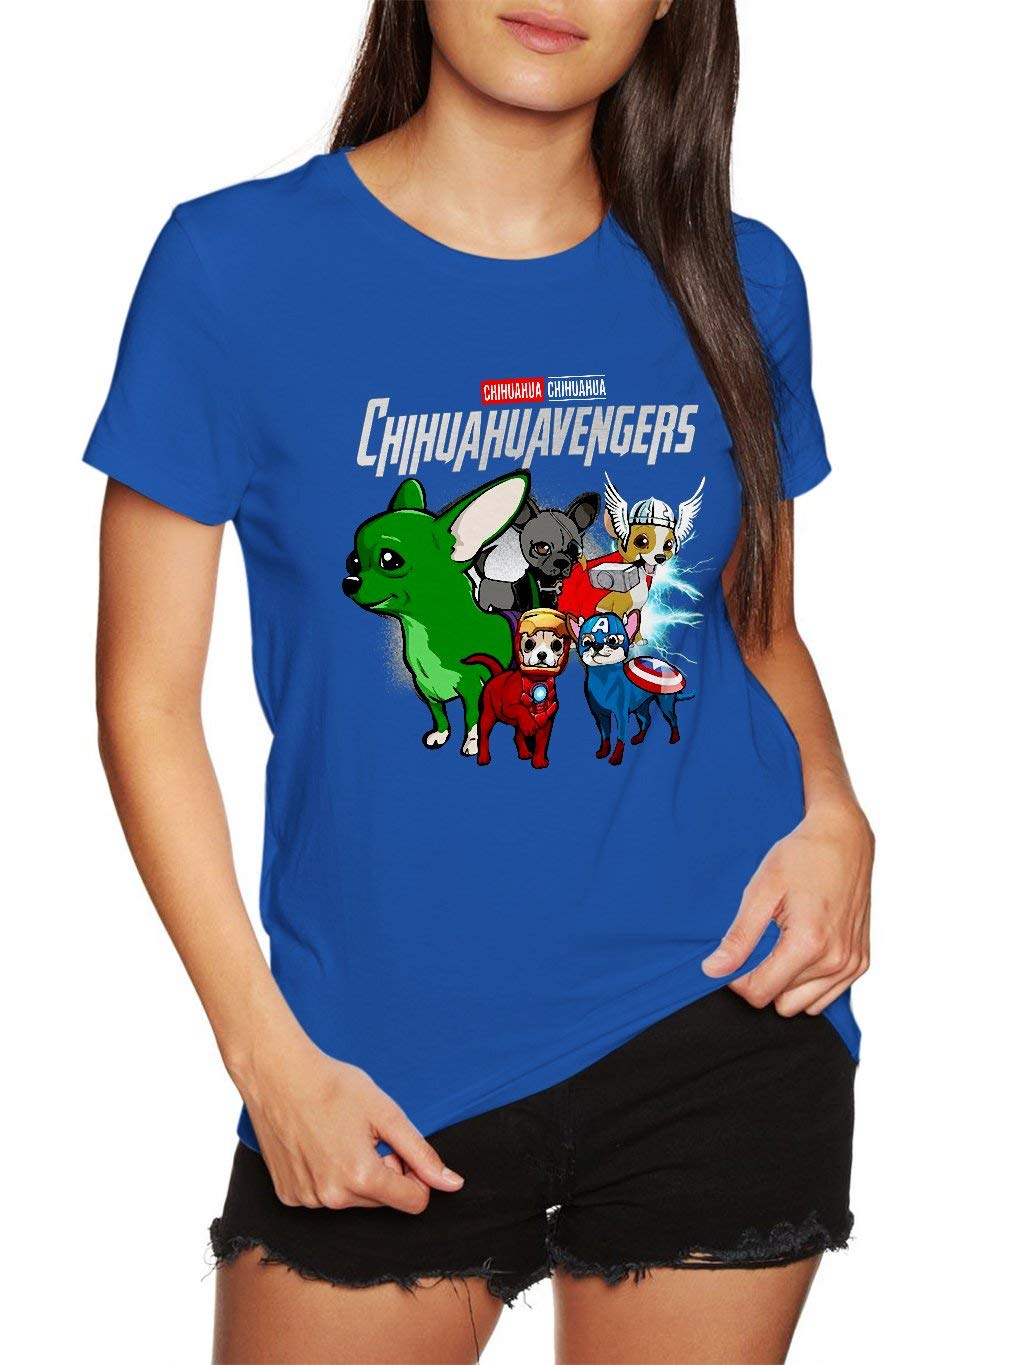 Chihuahua Chihuahuavengers Funny Vintage Trending Awesome Gift Shirts